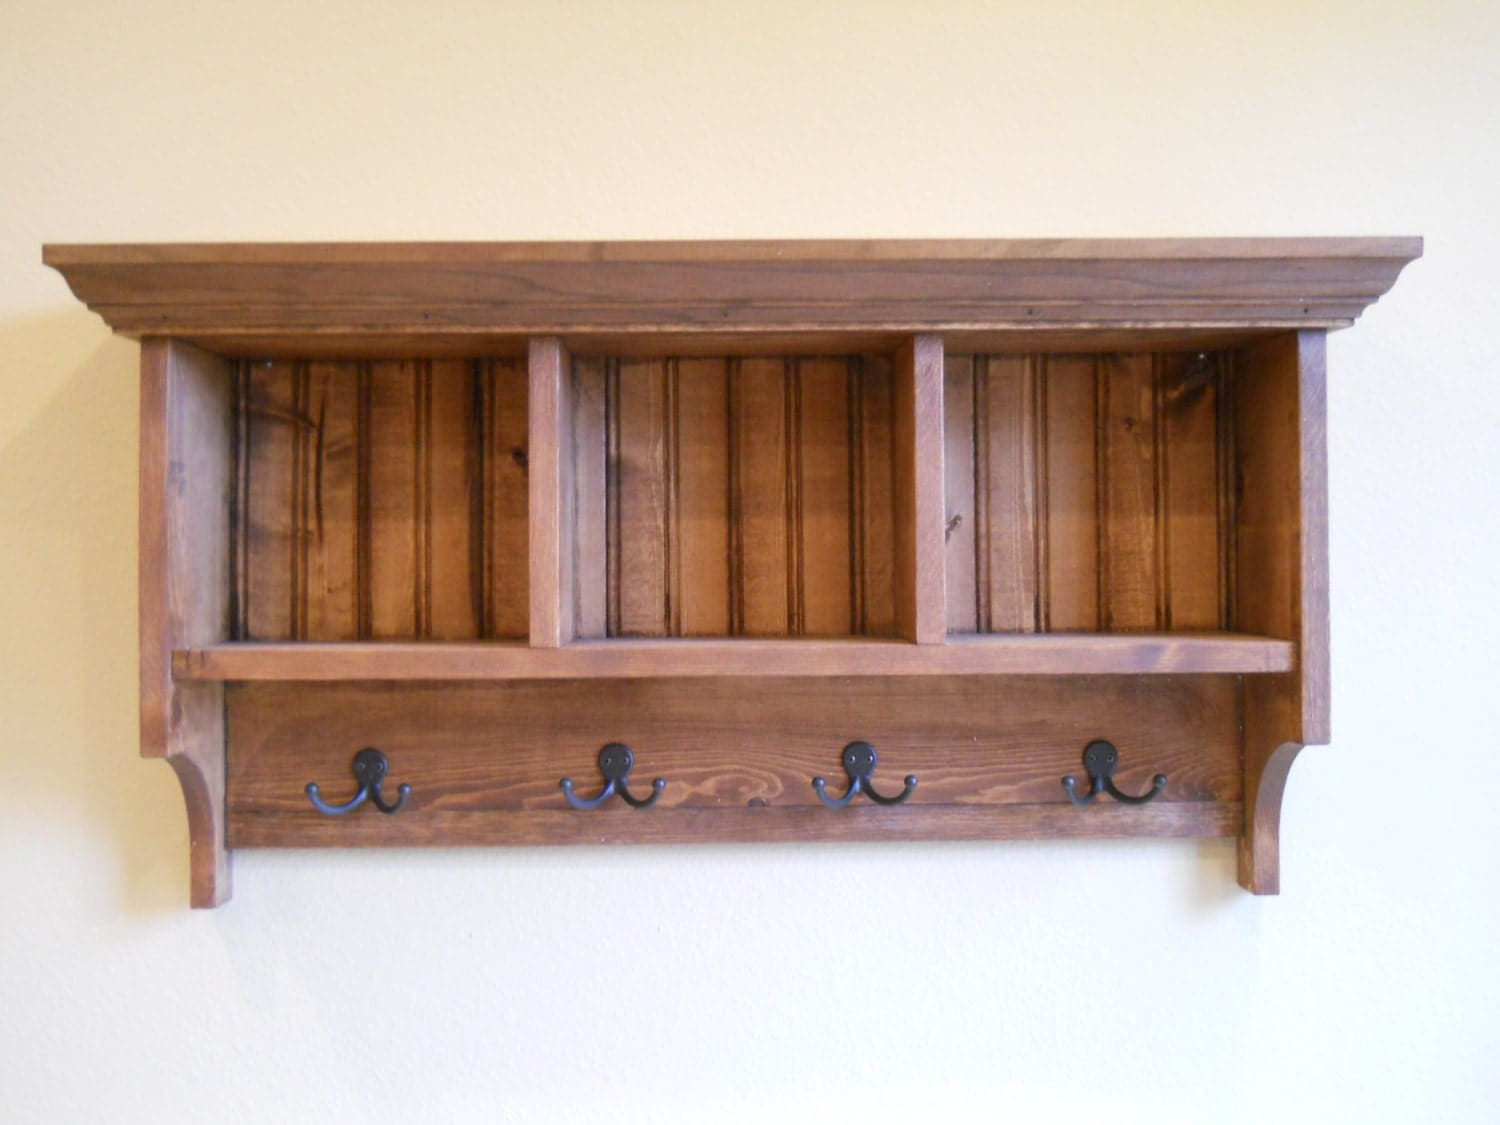 cubby shelfmud room shelf wood cubby cubby storage cubby